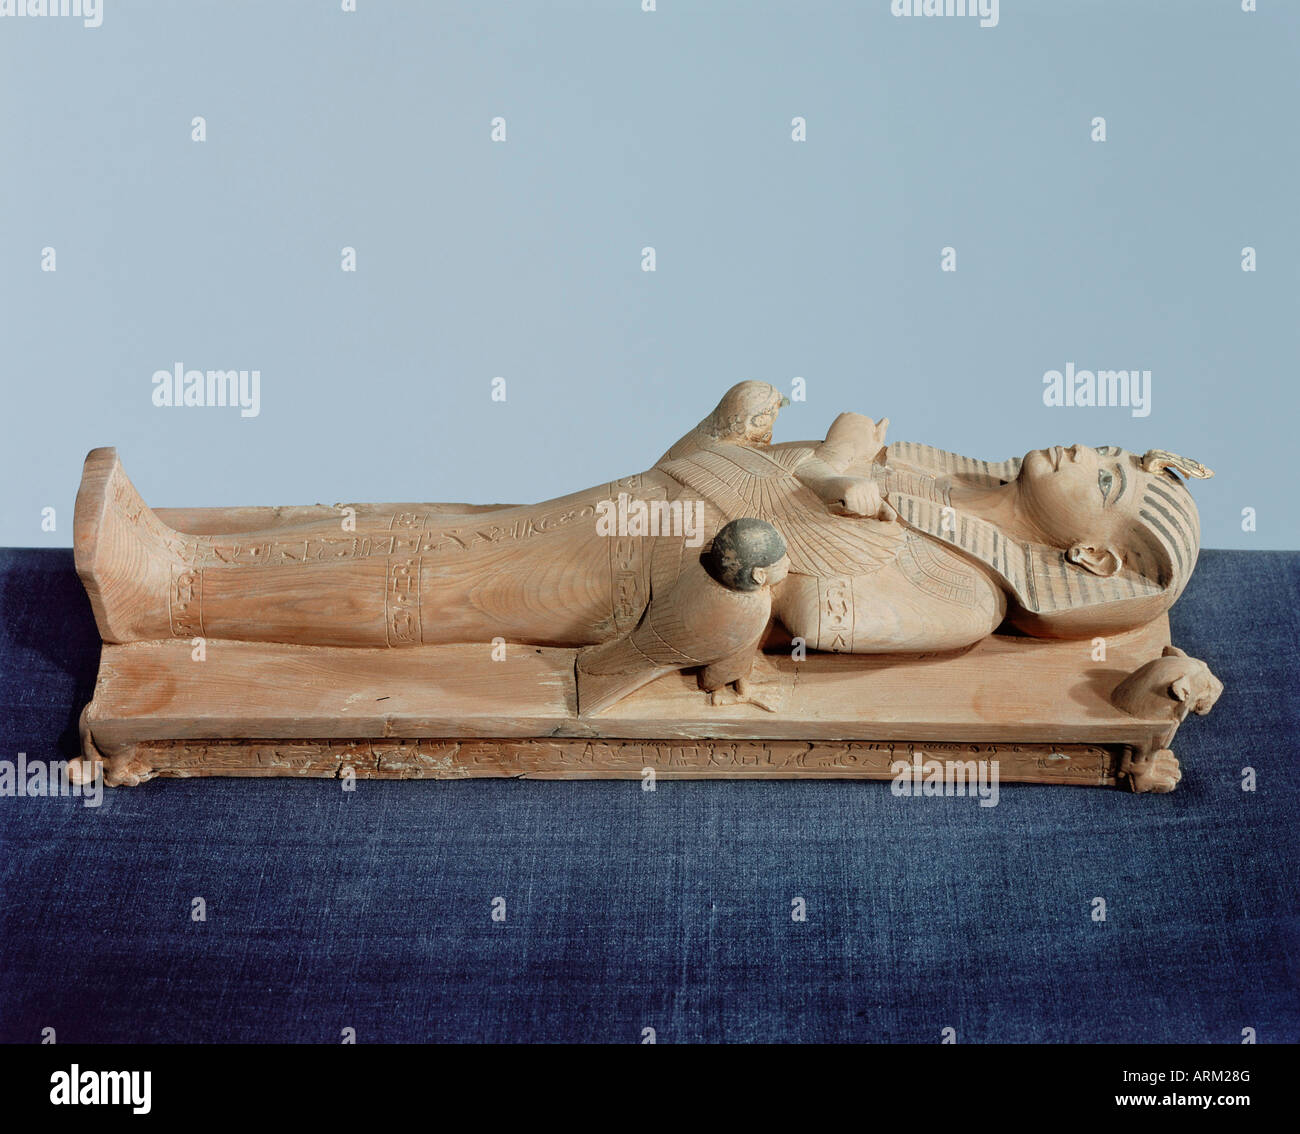 Image of the king's mummy on its funeral bed flanked by the king's two souls, from the tomb of the pharoah - Stock Image